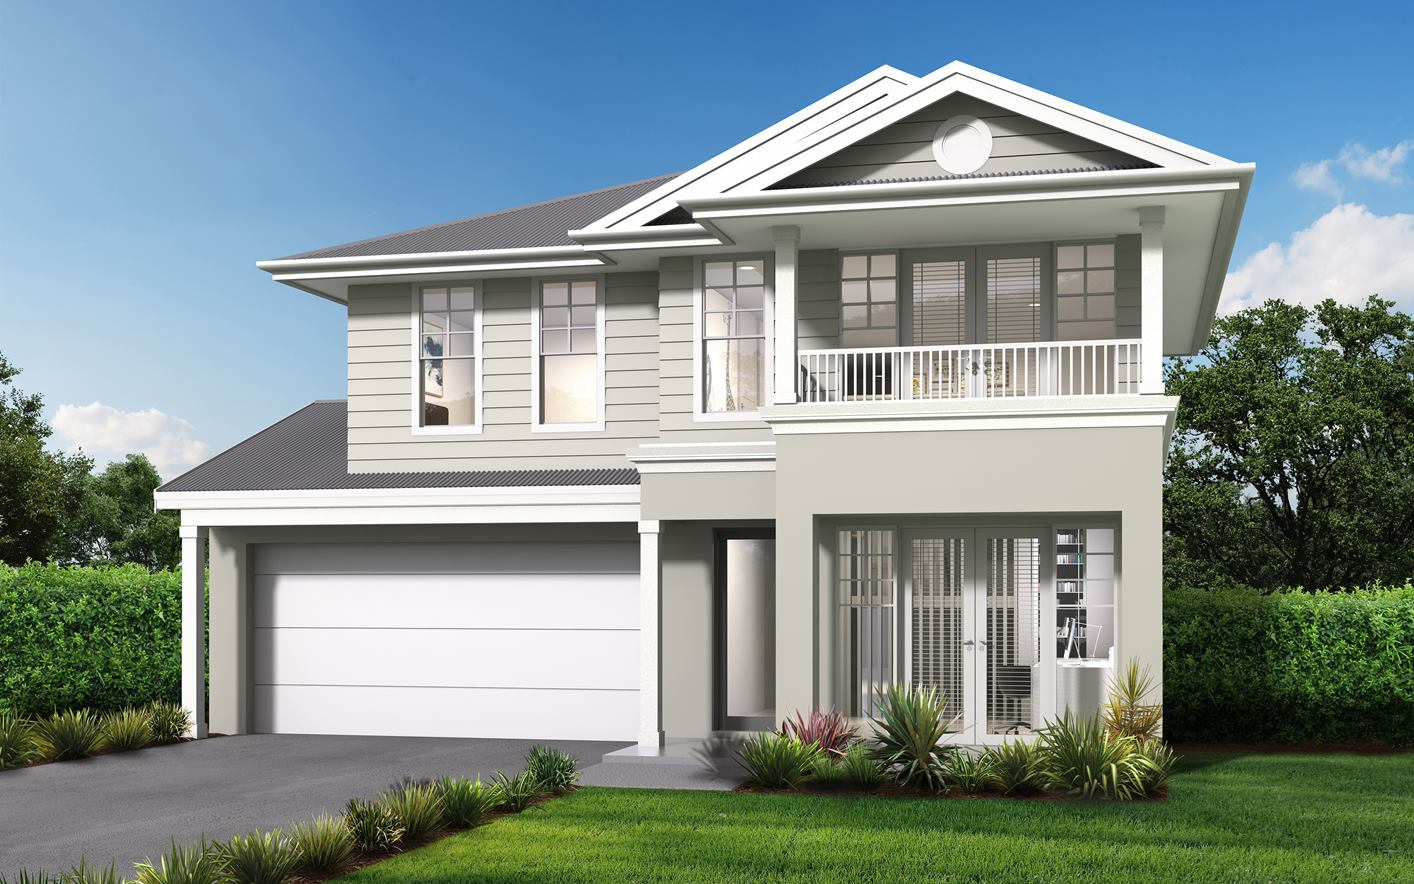 Novera Home Design with Hampton Facade